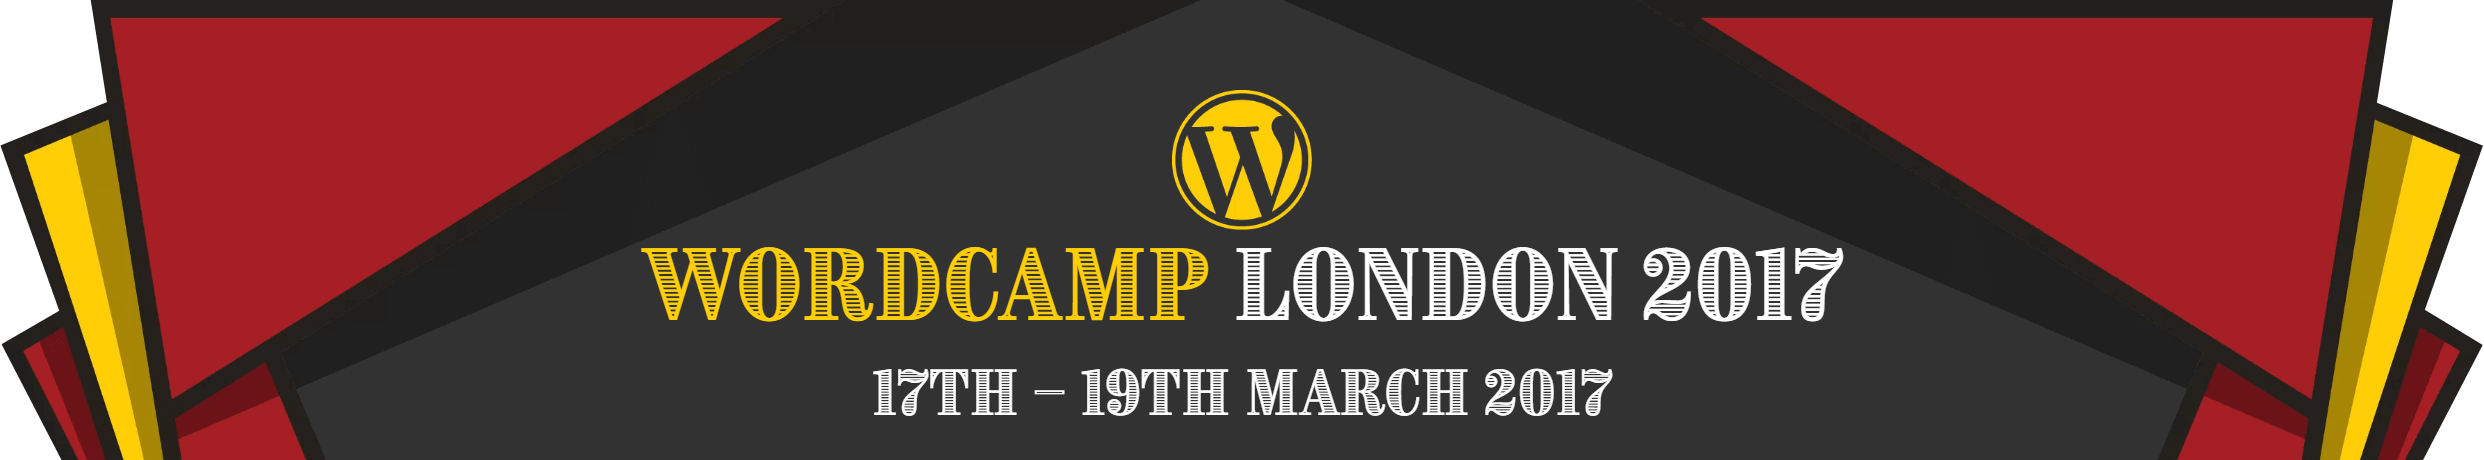 WordCamp London 2017 logo